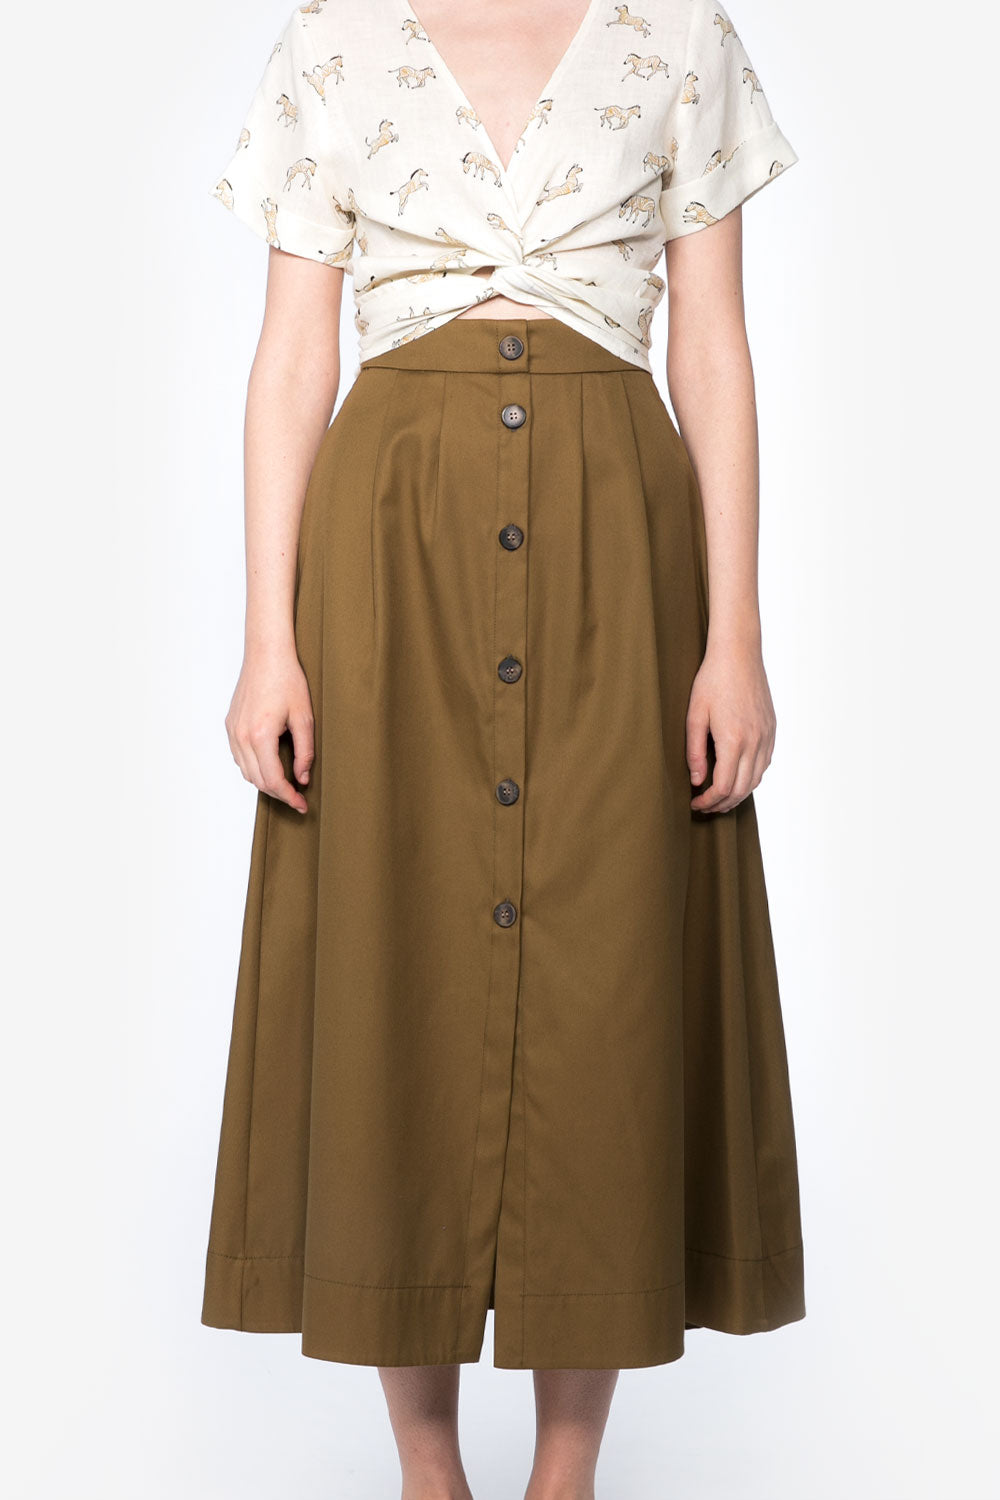 India Skirt in Safari